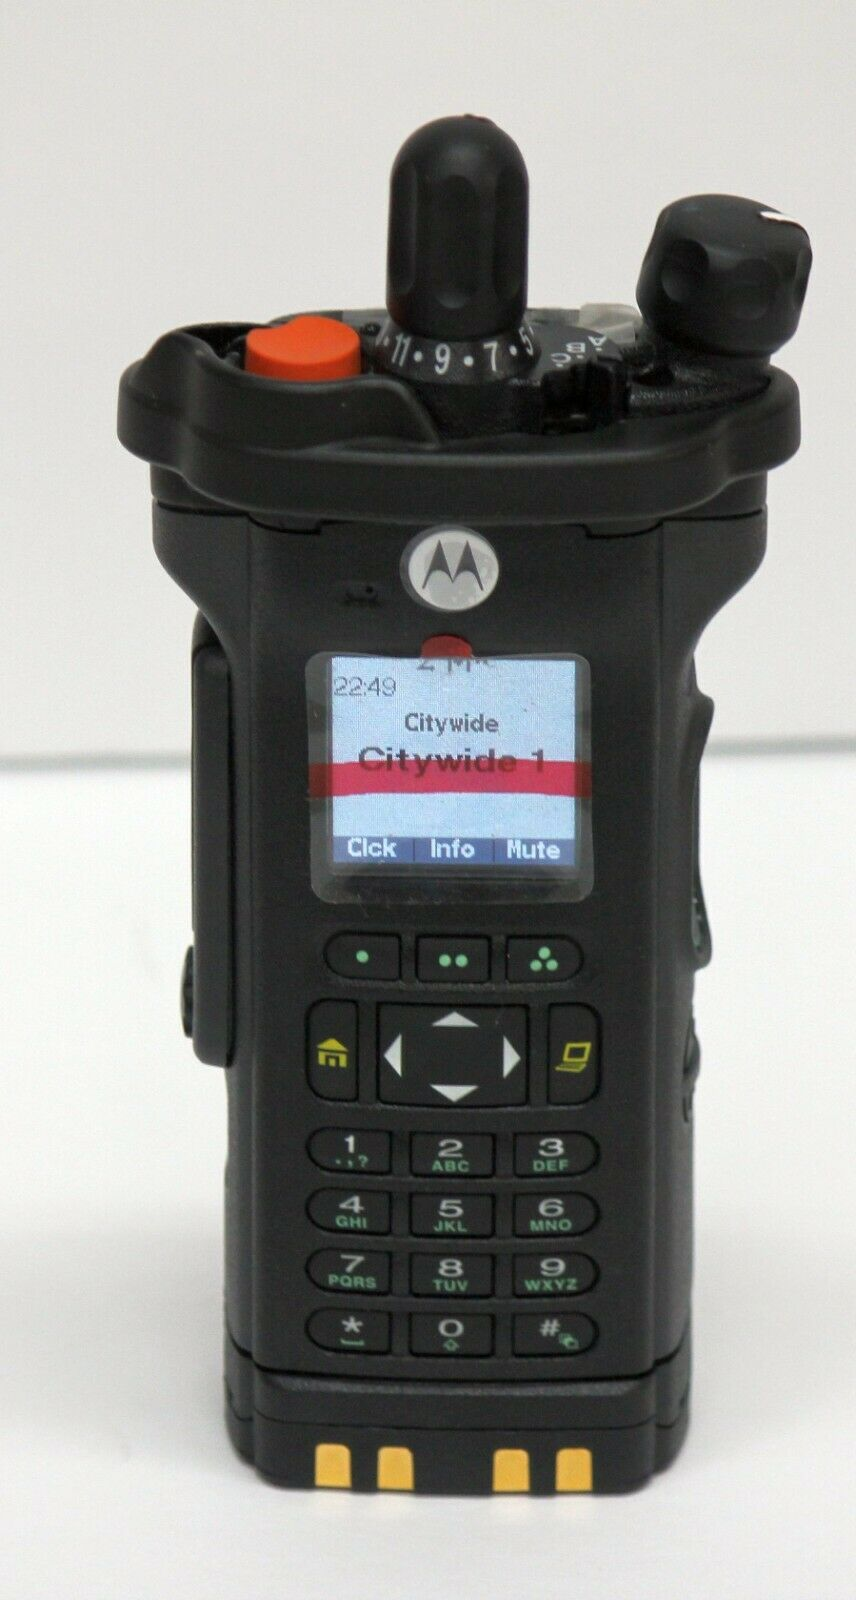 TESTED MOTOROLA APX APX8000XE P25 TDMA RADIO FPP VHF 7-800 UHF DIGITAL FPP AES. Available Now for 4199.99